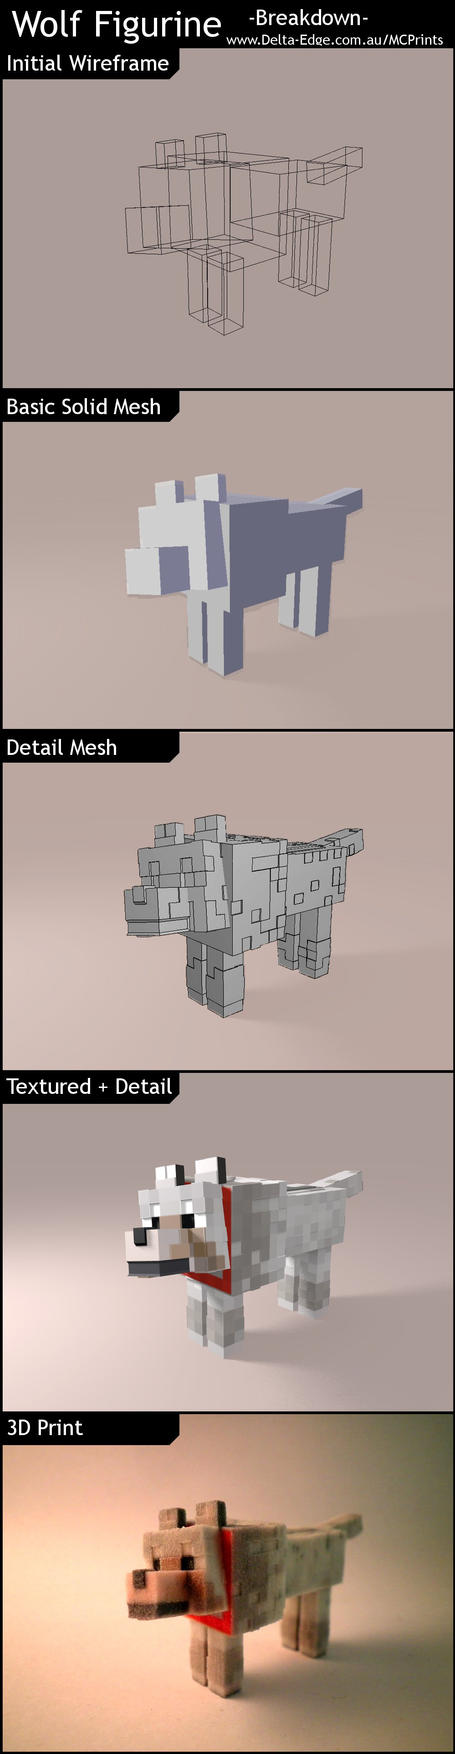 Minecraft Wolf - Digital to 3D Print process by ADEdge